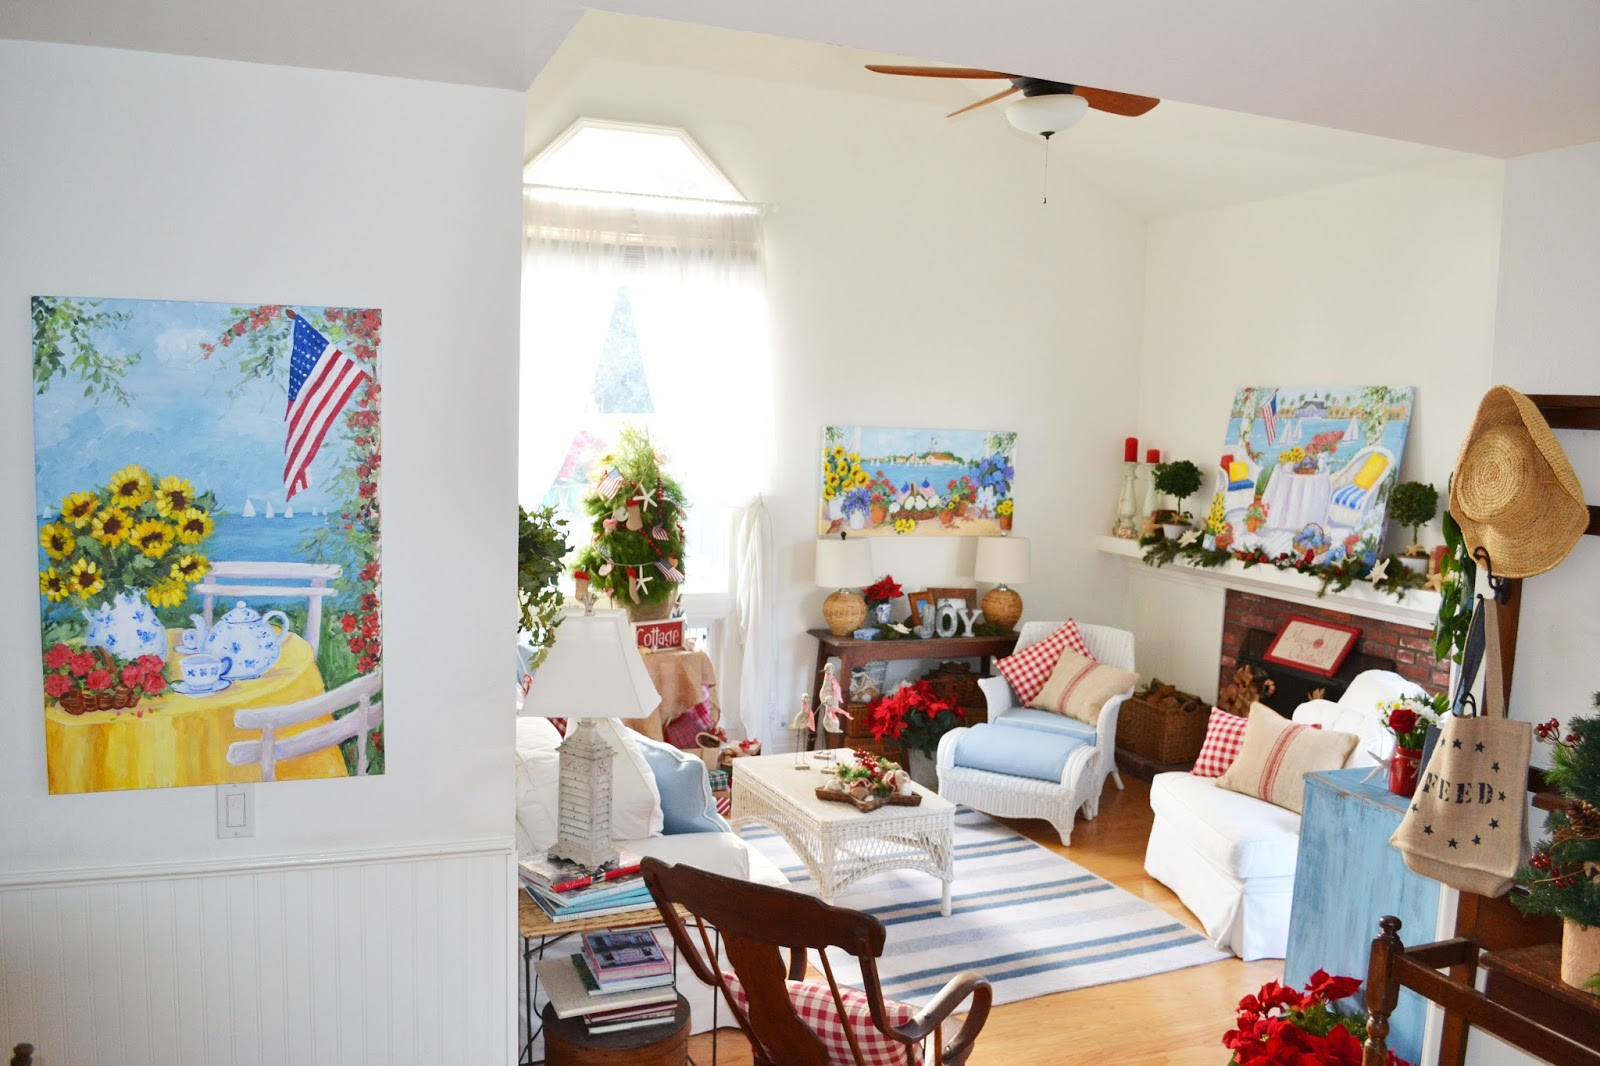 The Vintage White Wicker Chairs Shows Up In A Lot Of My Coastal Cottage Paintings And Is Painting Over Fireplace Bentley Dining Room